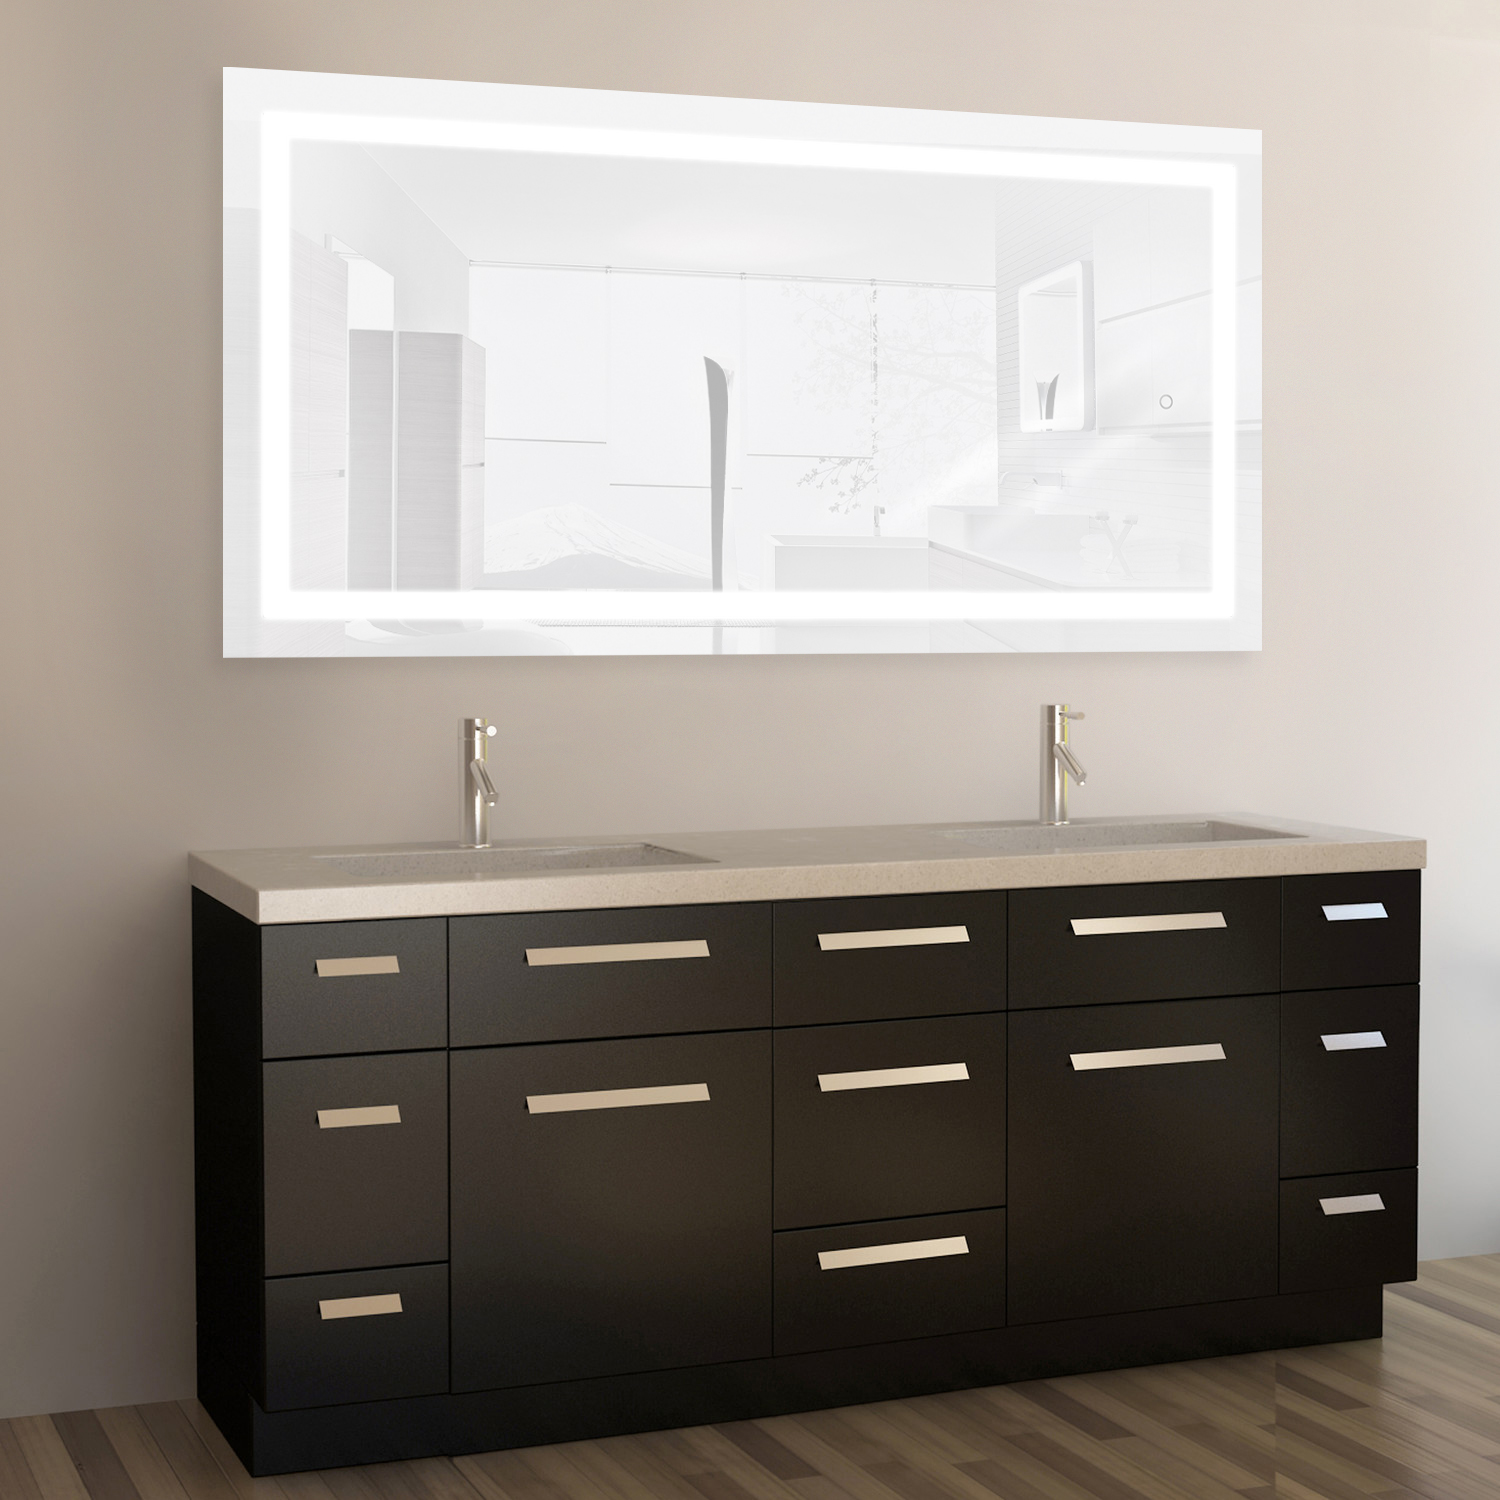 Bathroom Mirrors 60 X 30 60 bathroom mirror ~ dact